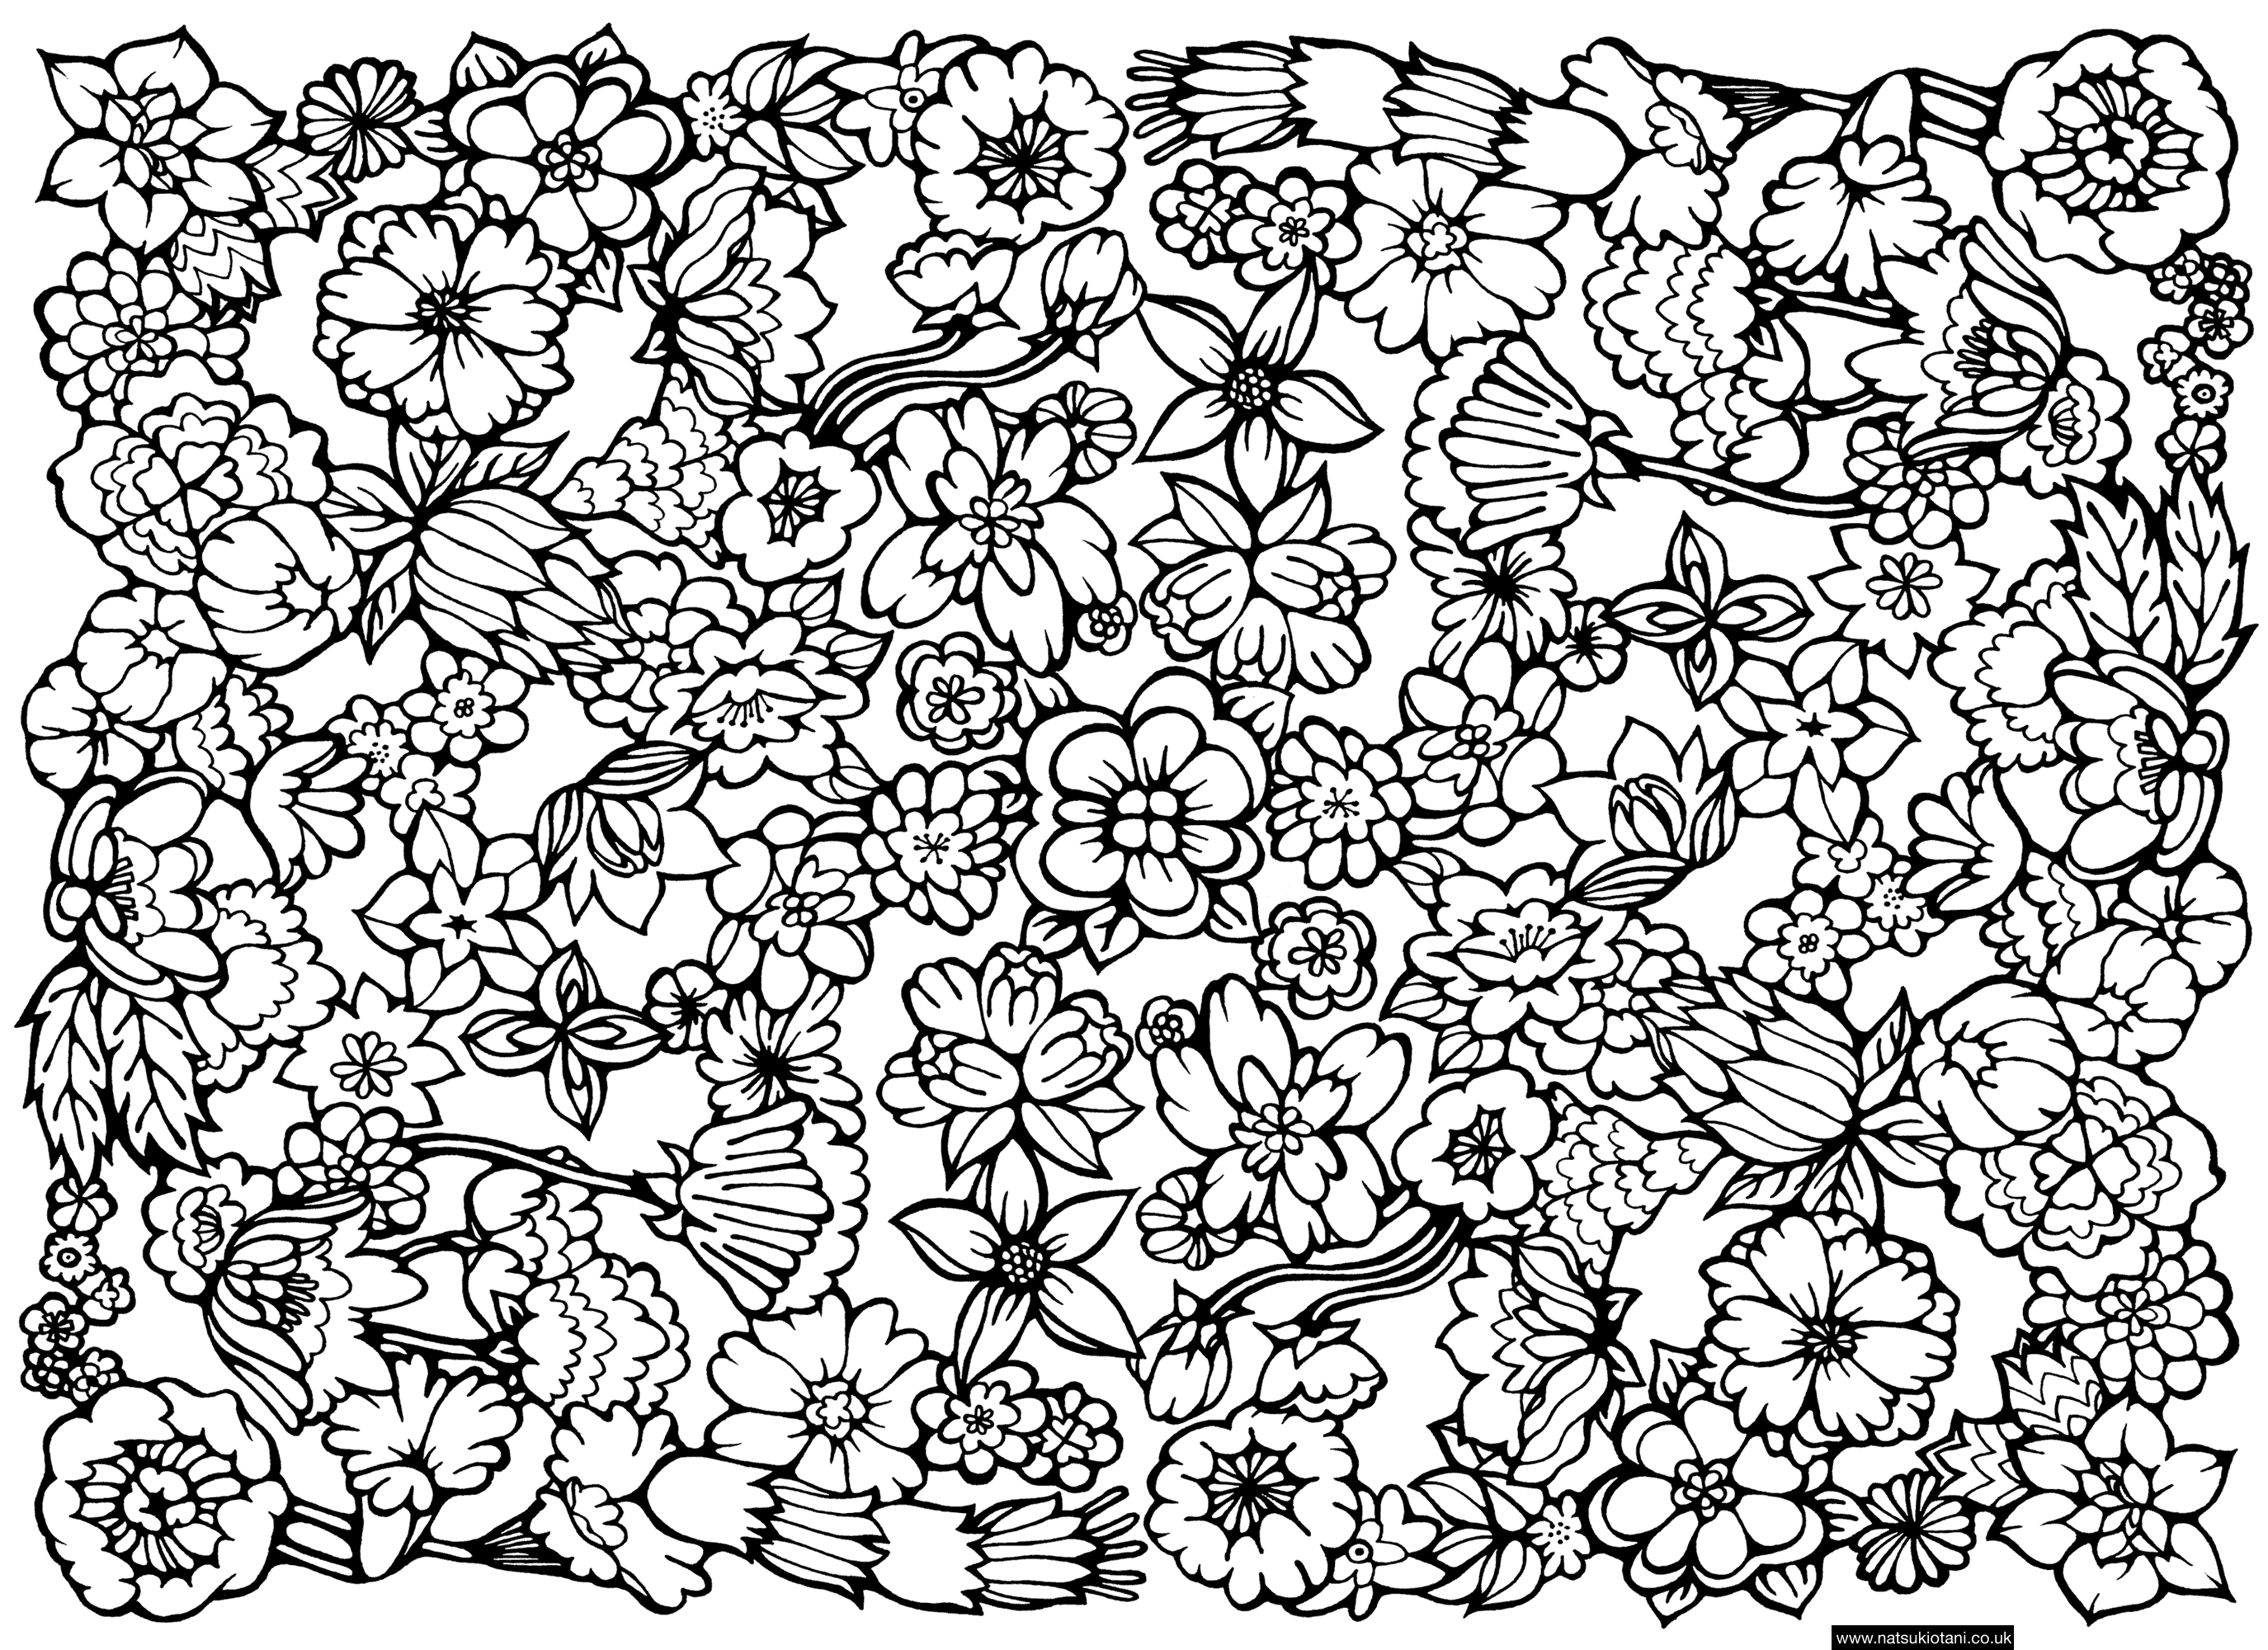 coloring page pdf 10 free printable holiday adult coloring pages page coloring pdf